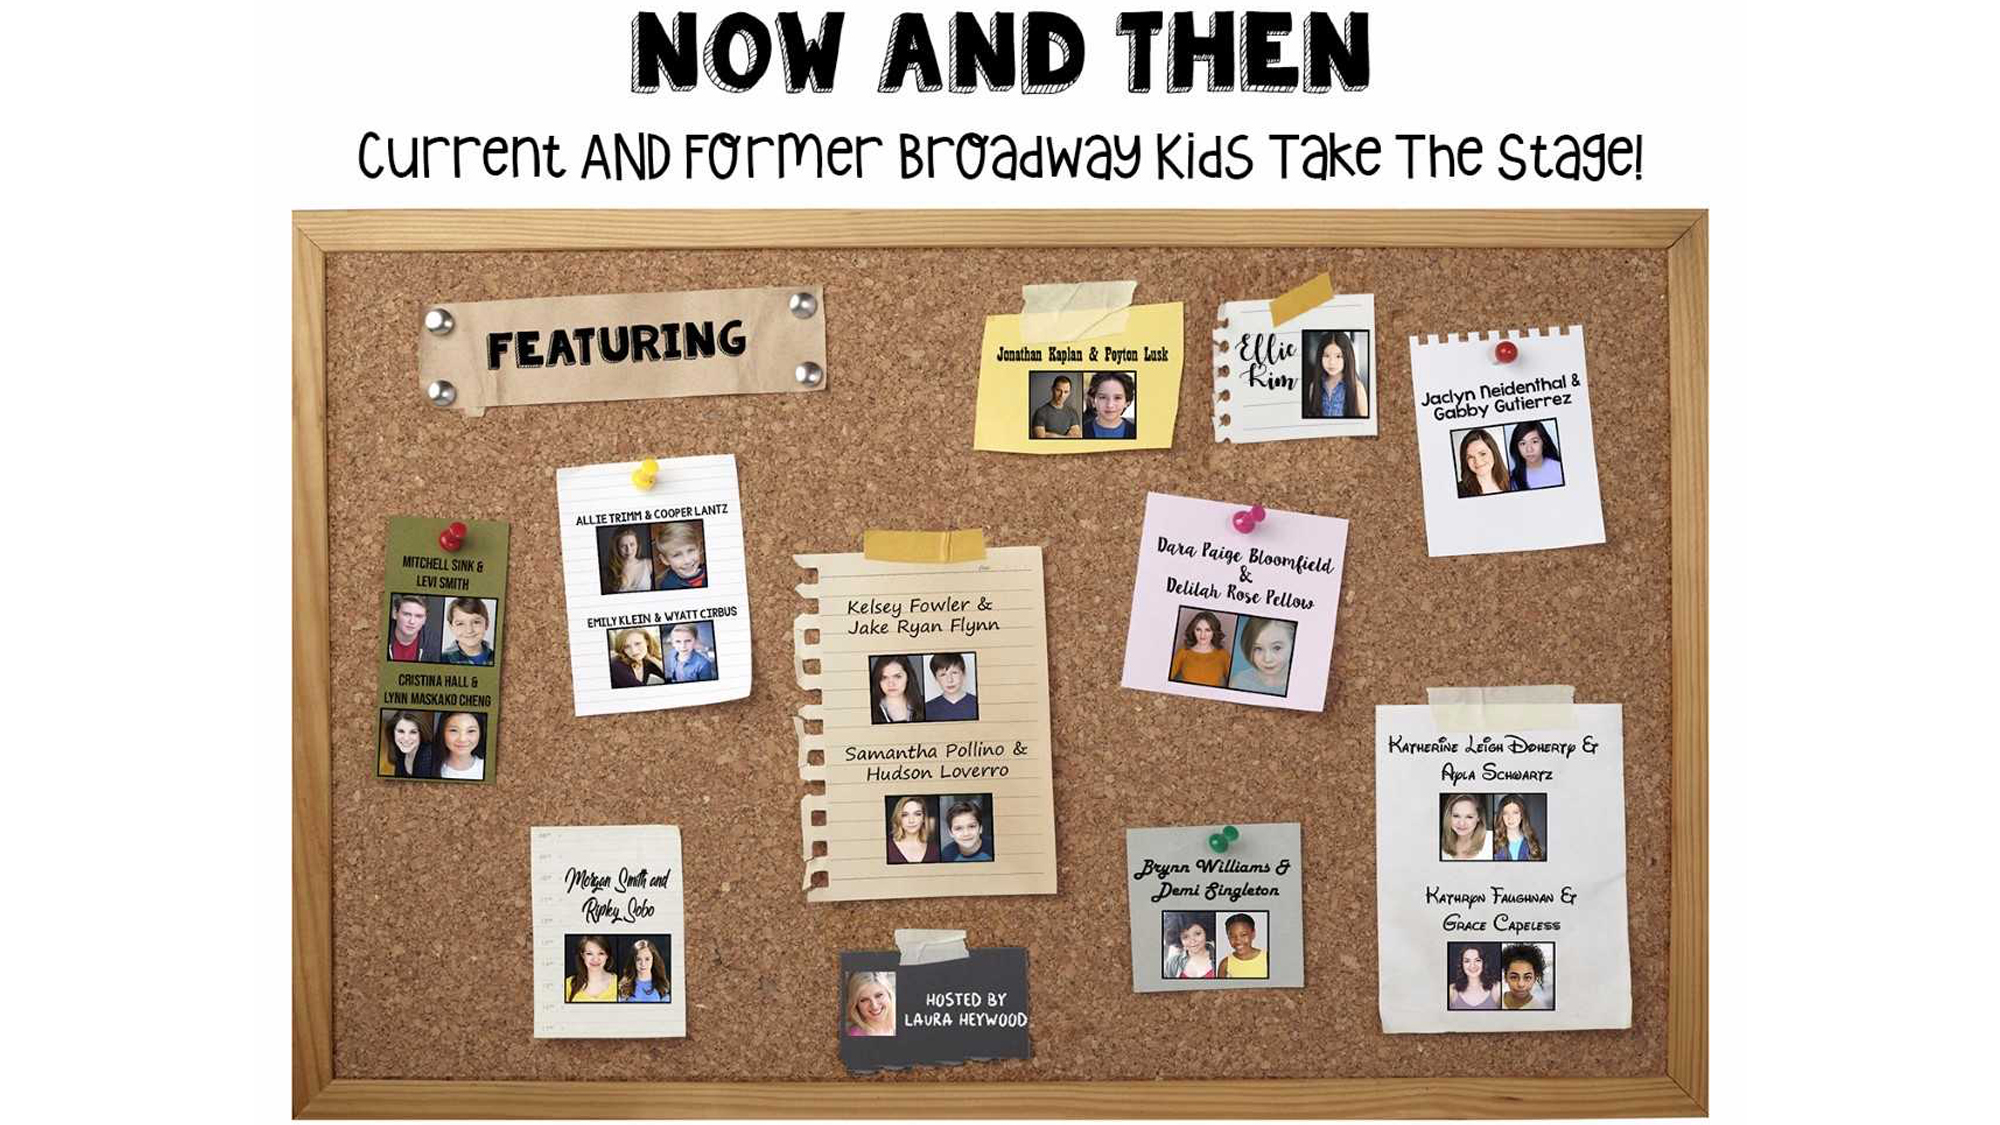 Now & Then: Current AND Former Broadway Kids Take the Stage